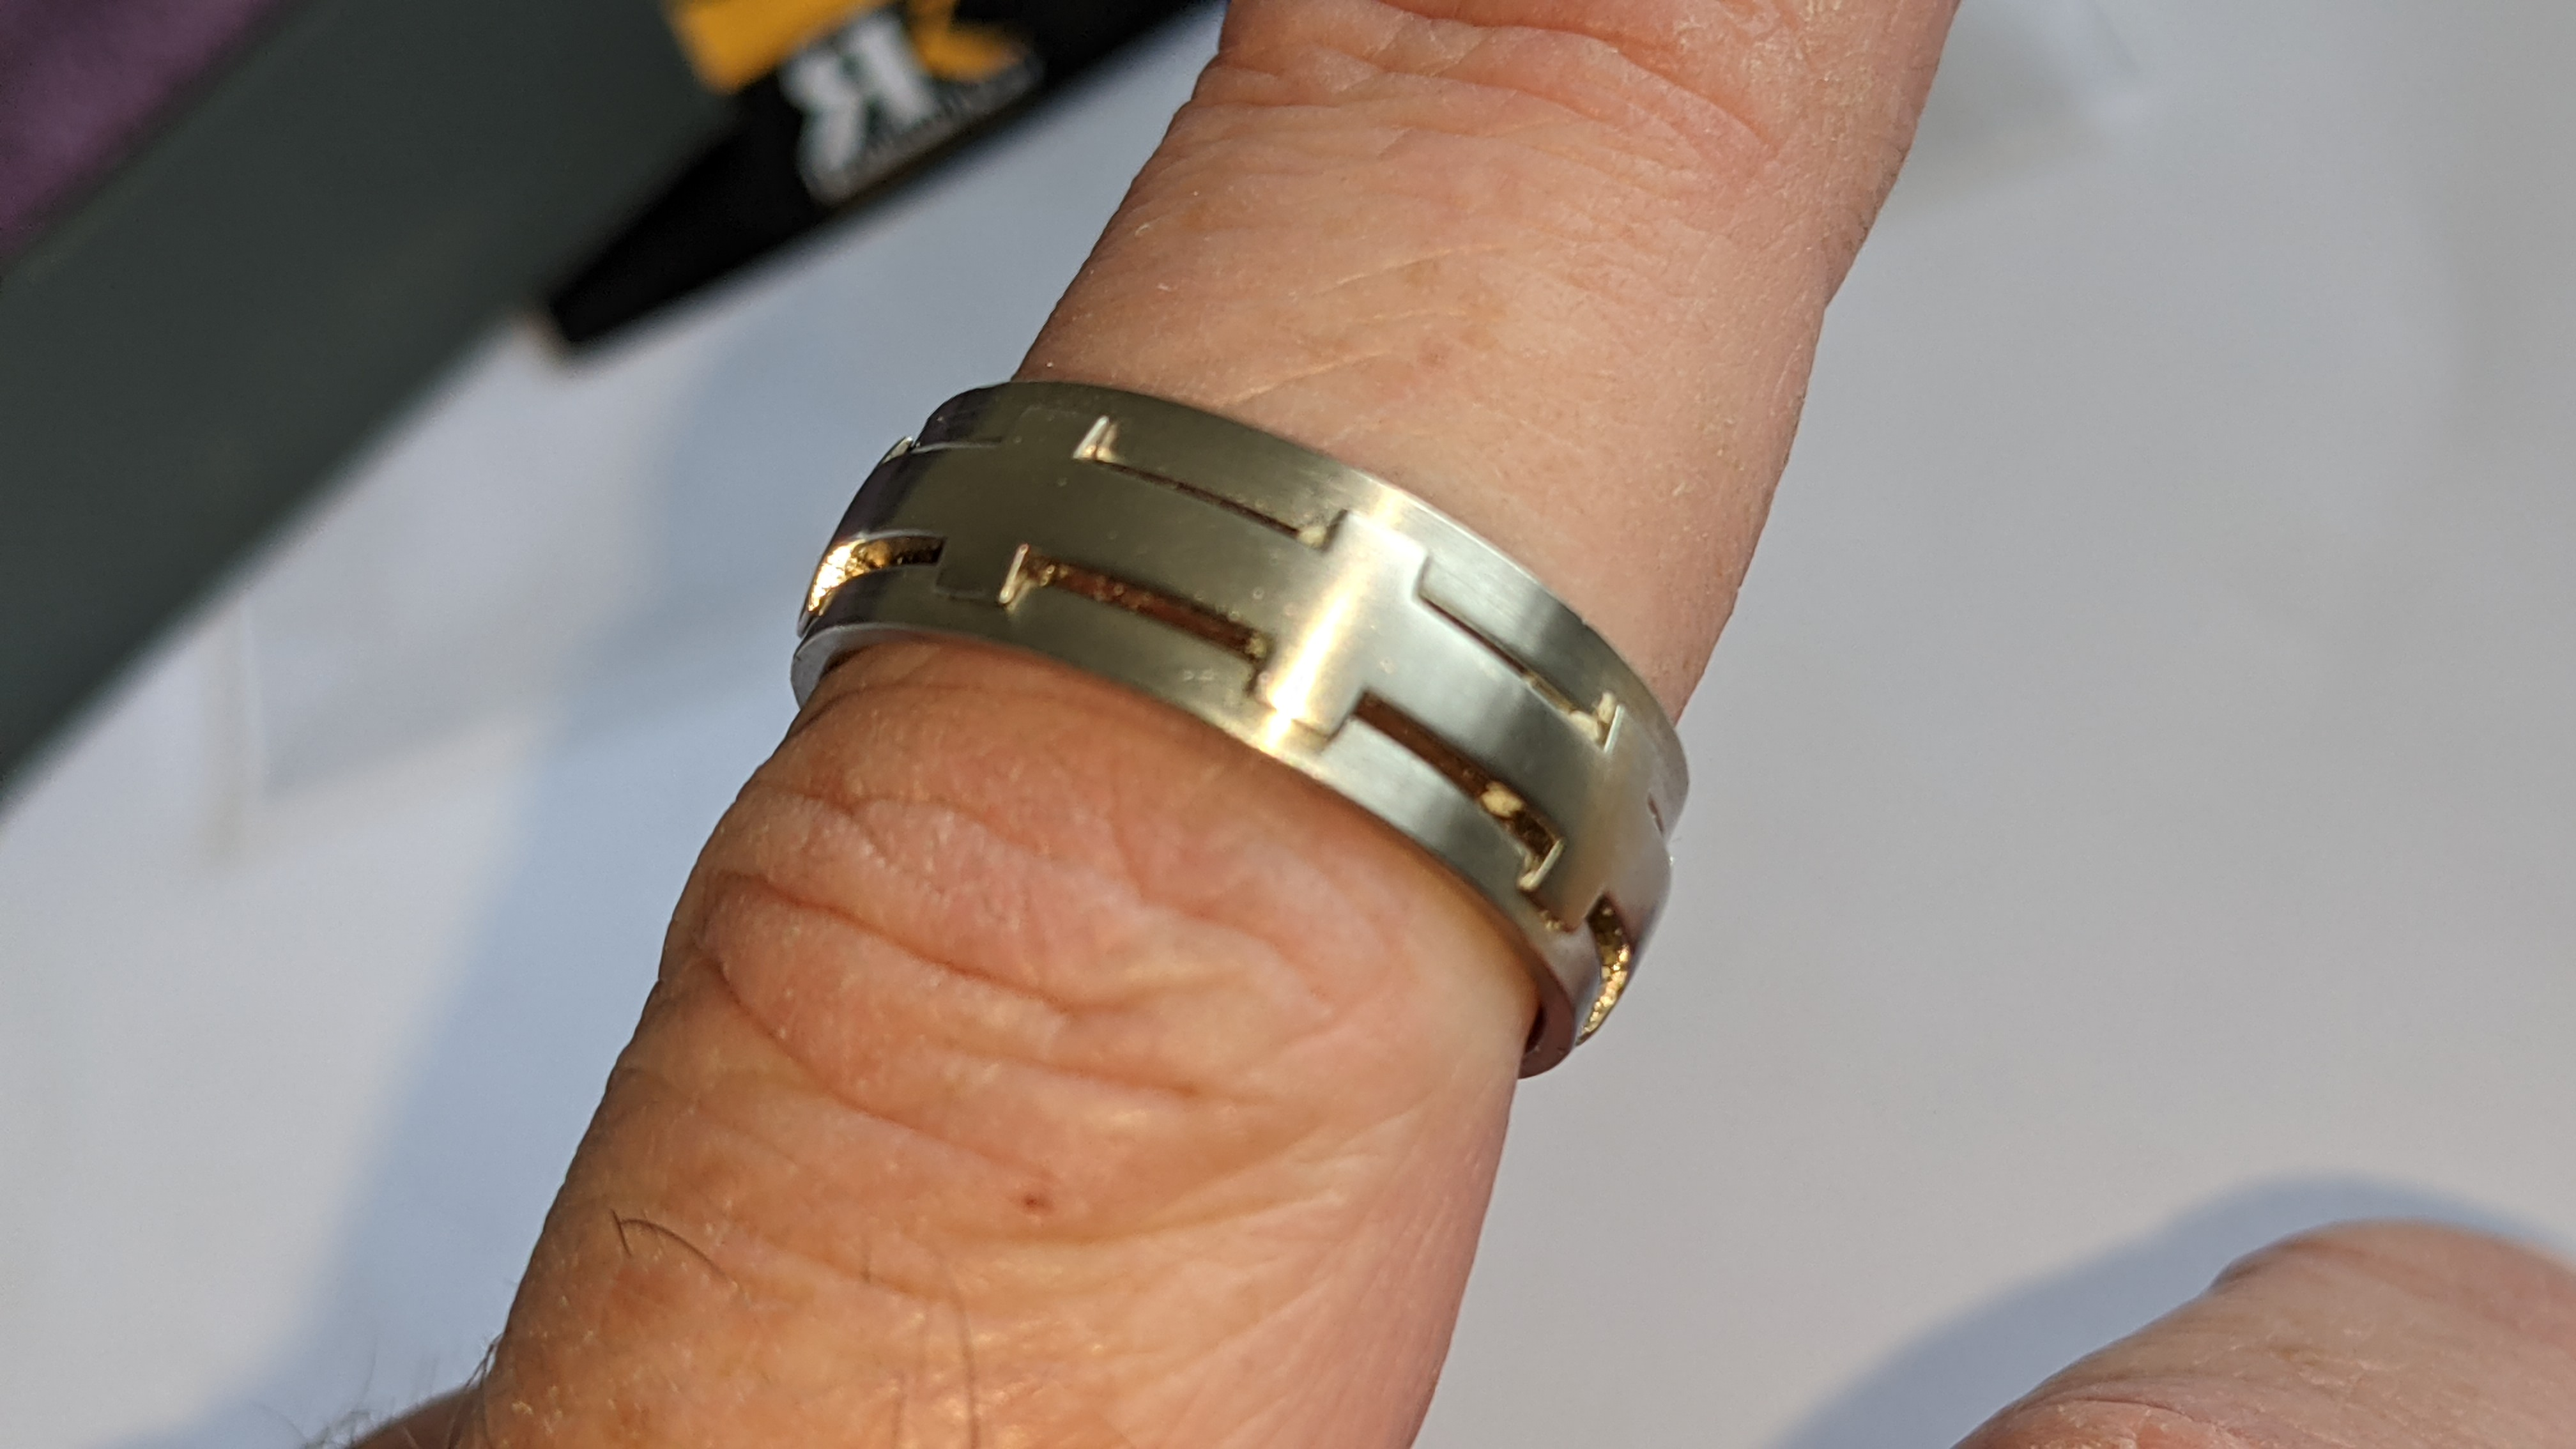 Platinum 950 ring in matt & polished finish, 7.5mm wide. RRP £2,960 - Image 14 of 15